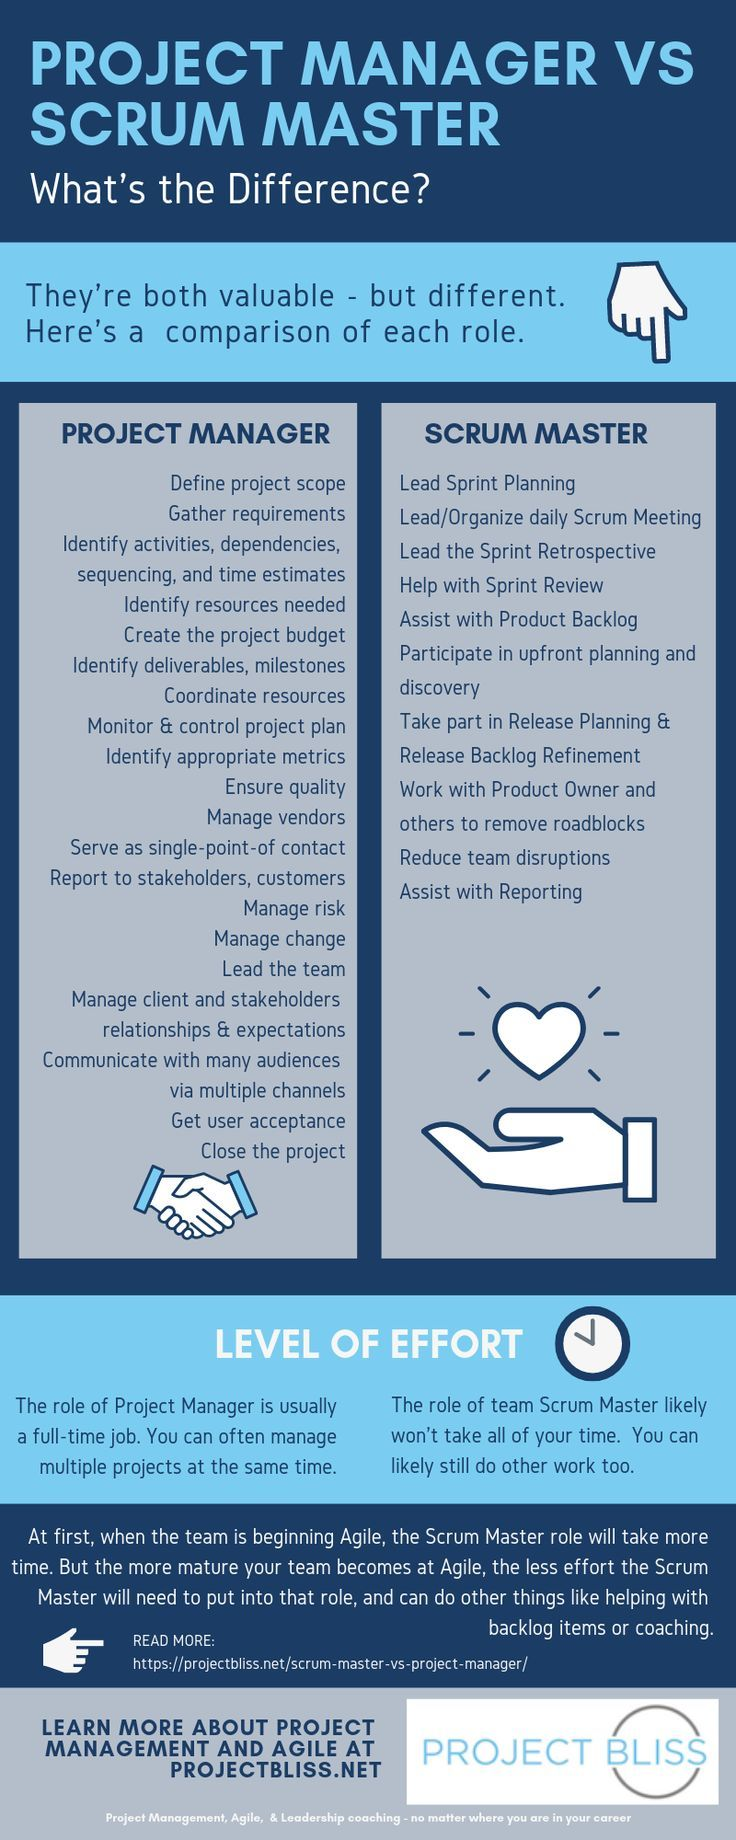 Scrum Master vs Project Manager What's the Difference